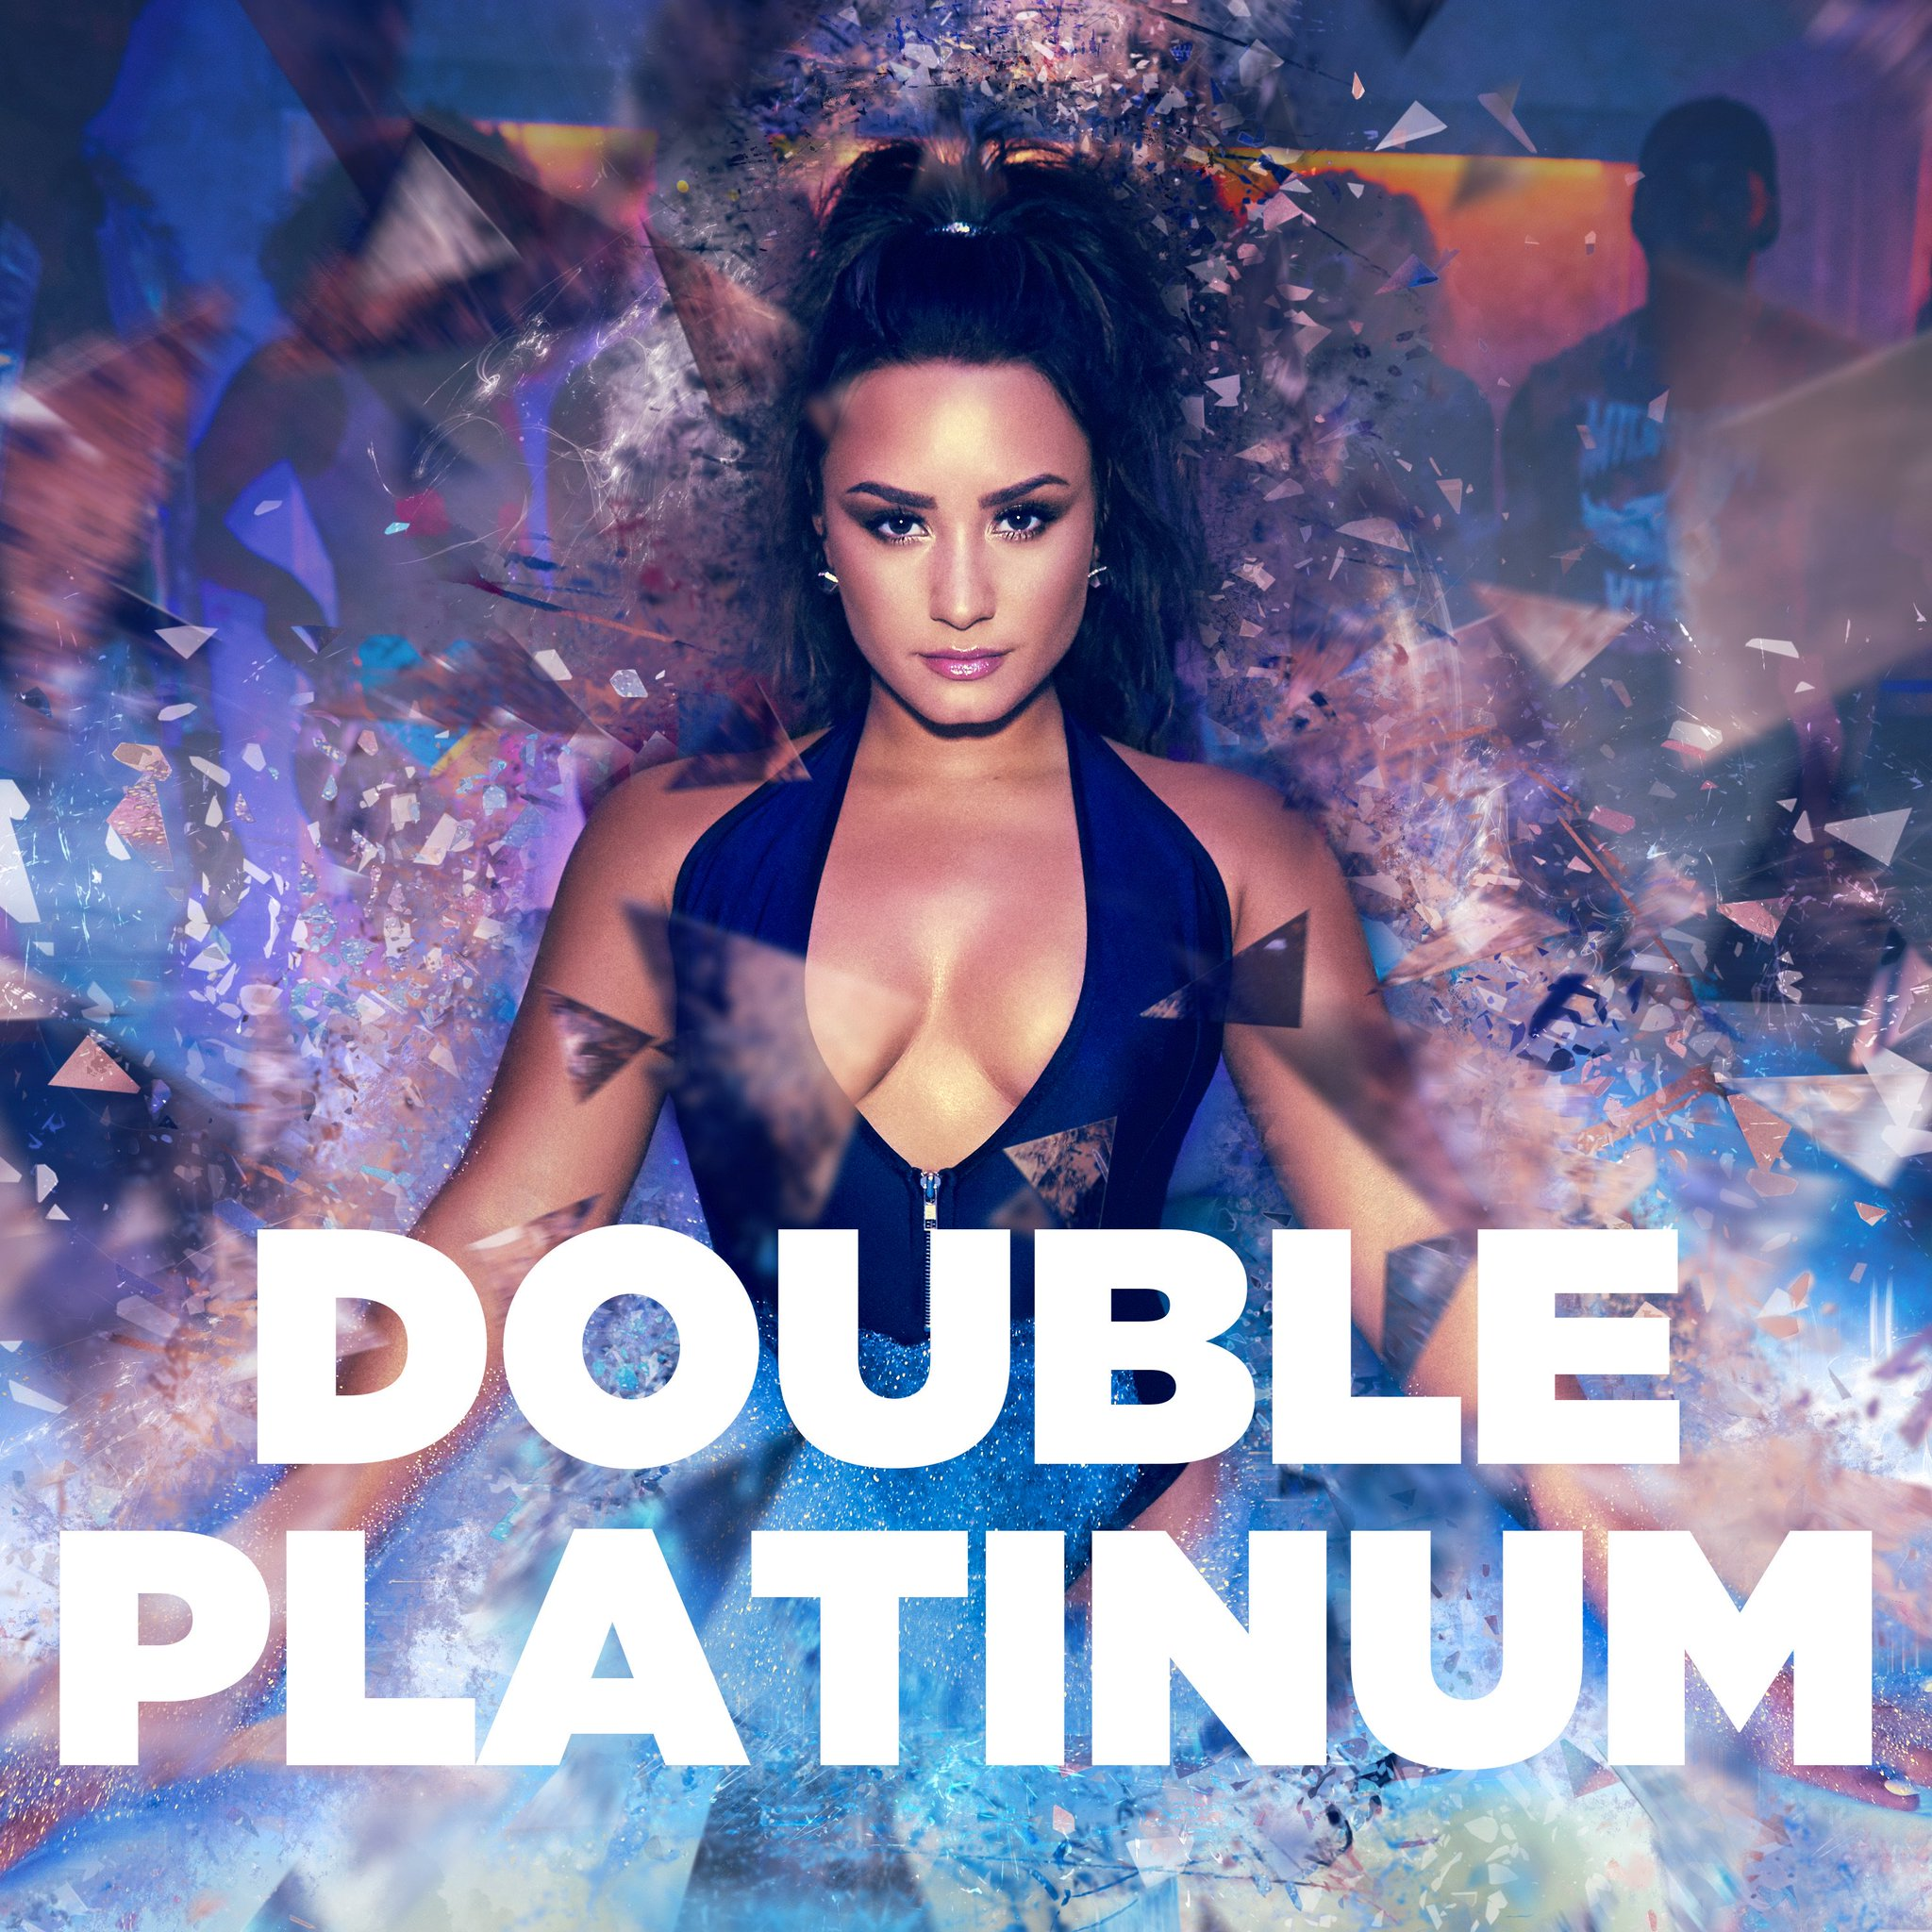 #SORRYNOTSORRY is officially double platinum??? Thank YOU!! Love my Lovatics so much ❤️❤️ https://t.co/eOsDEeqQhK